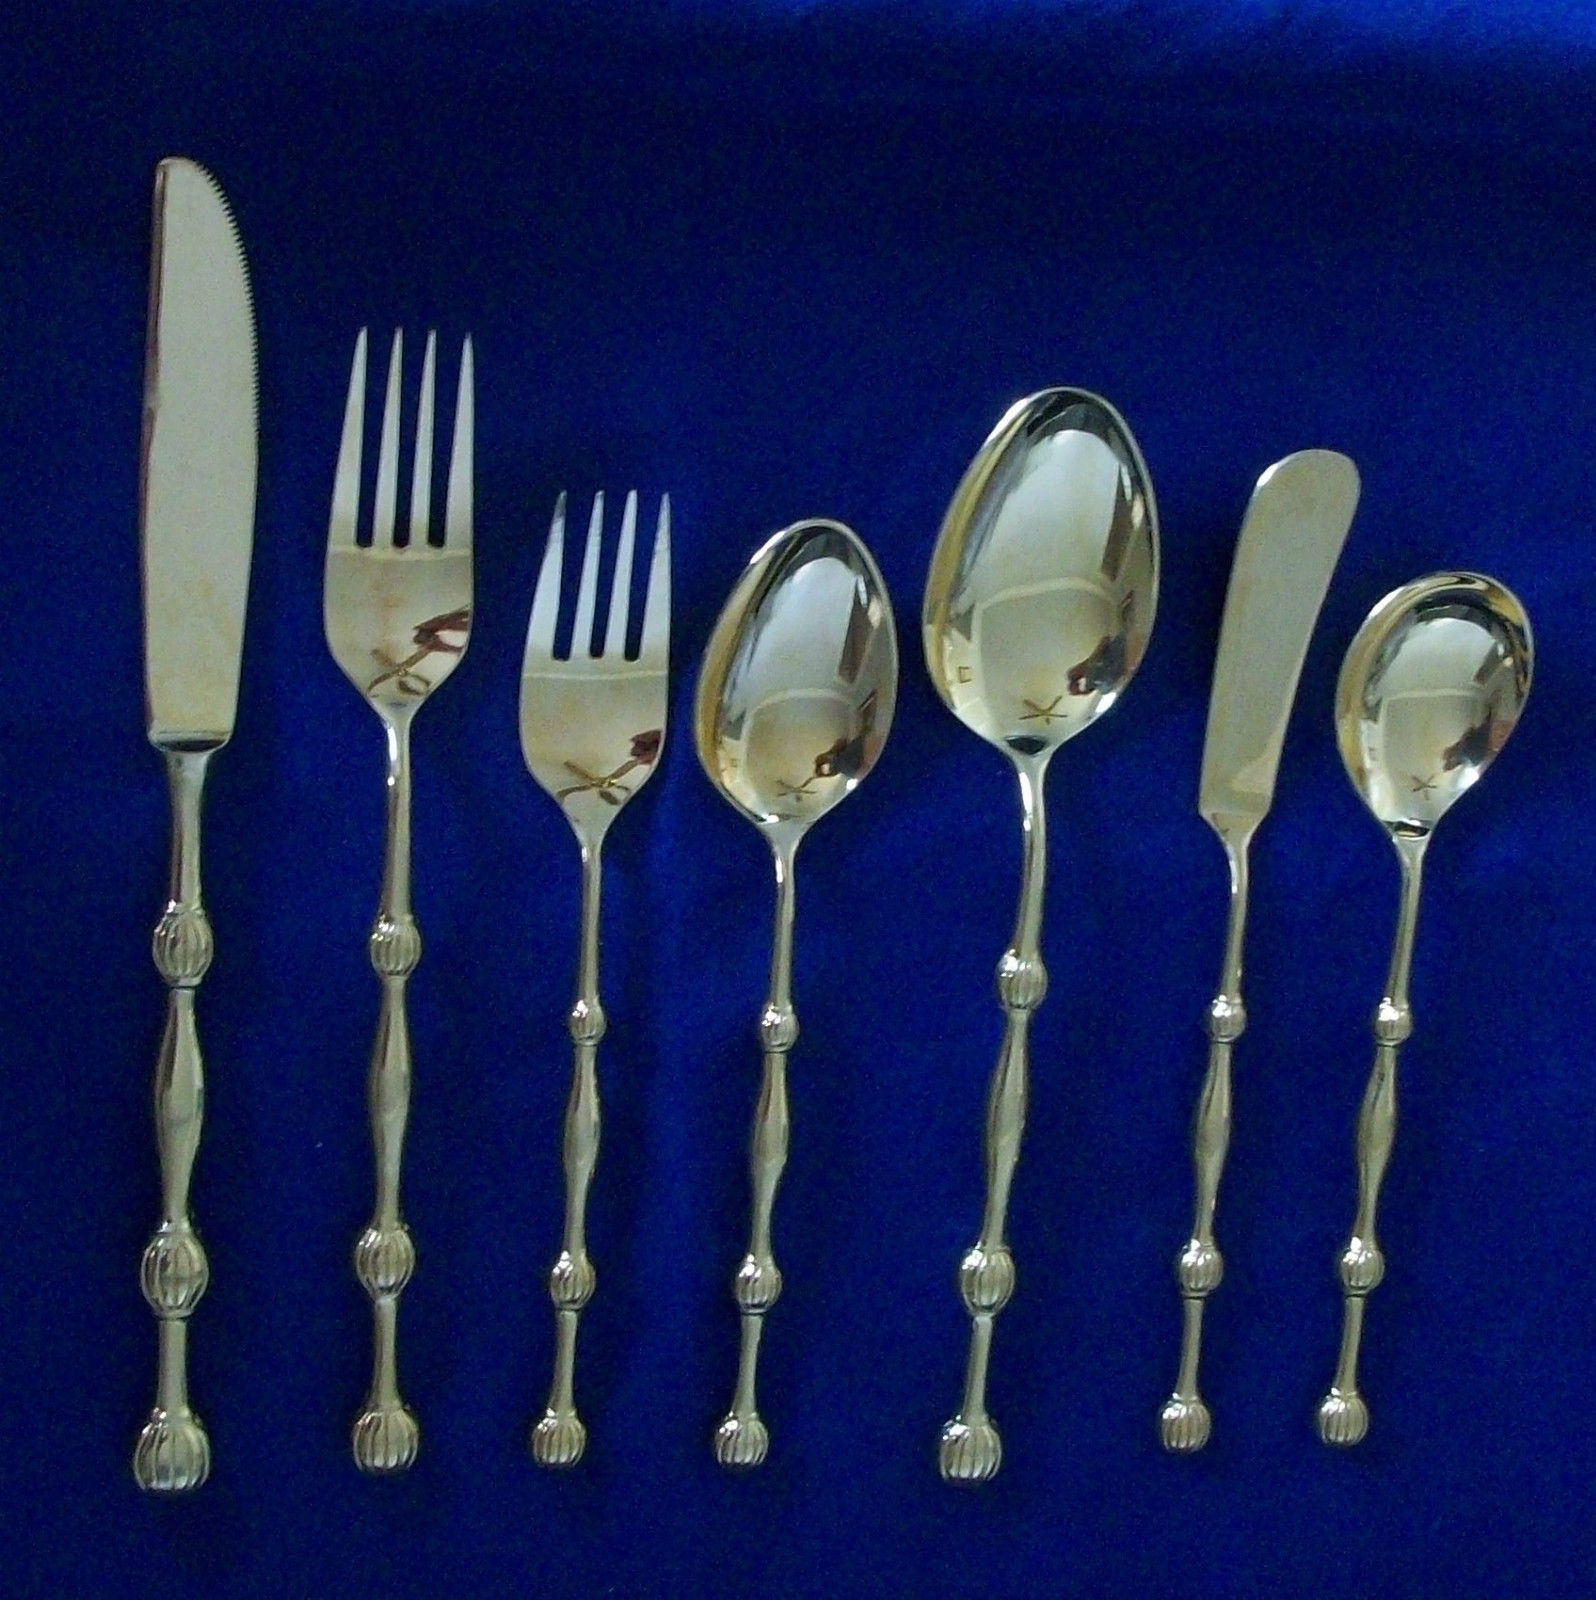 Stanley Roberts Golden Minuet Flatware Japan and similar items